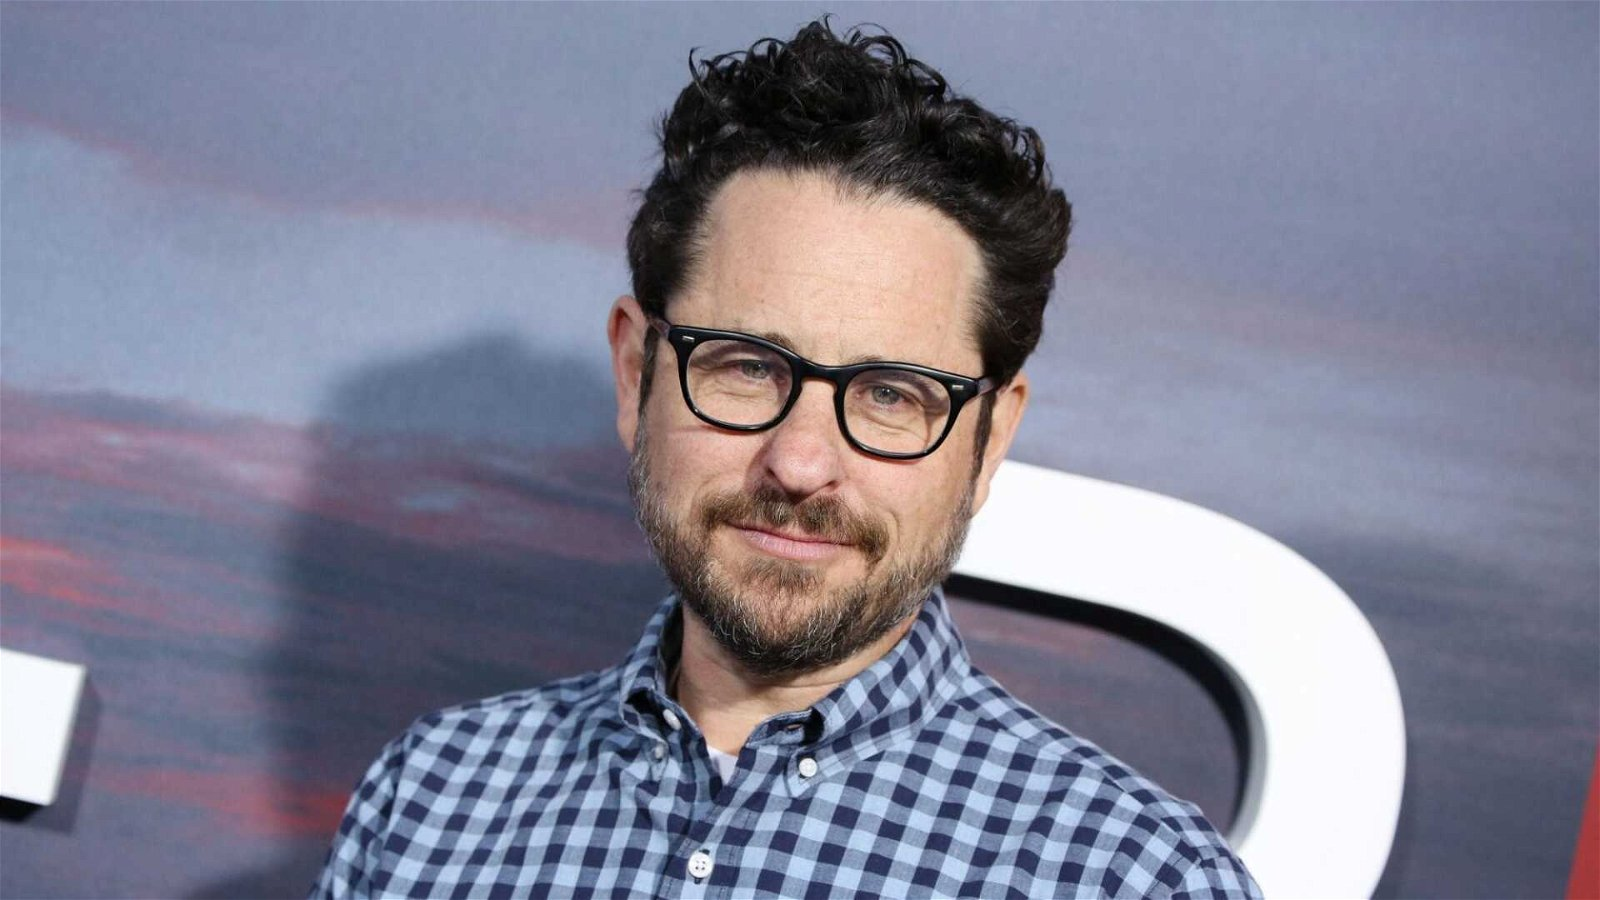 J.J. Abrams Turned Down $500 Million Purchase From Apple And Went With Half As Much 3